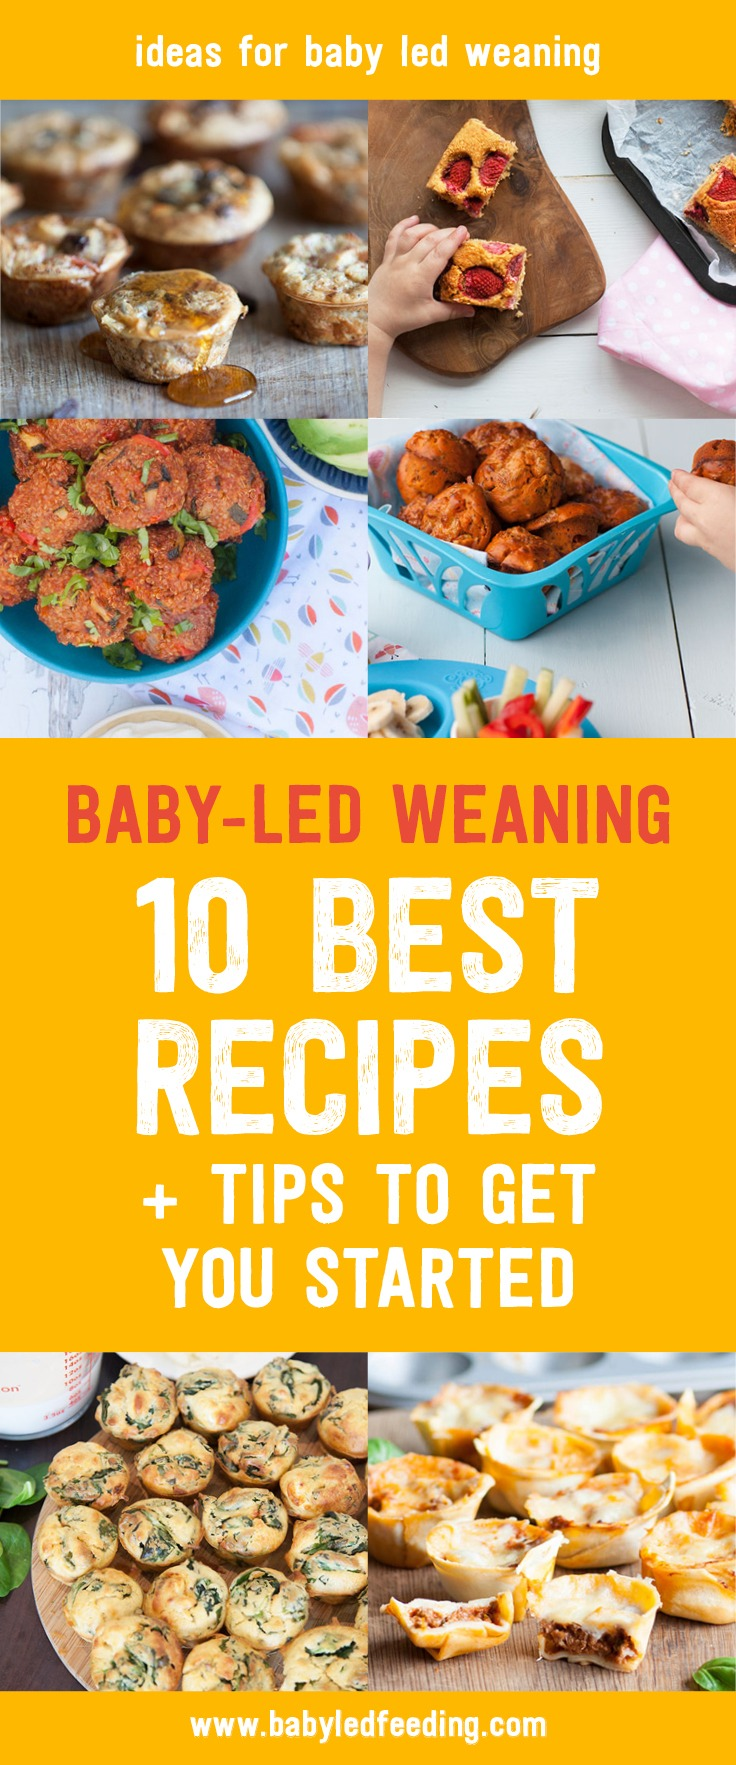 How do I start baby led weaning? Here are 10 tips and healthy baby led weaning recipe to start your baby on finger foods. Easy recipe that are refined sugar free, low in salt, and loaded with whole grains, vegetables, and fruit. Make ahead and freeze several of these nutritious recipe for a quick baby friendly meal! #babyledweaning #fingerfood #fingerfoodrecipe #firstfoods #babyfood #startingsolids #babyledfeeding